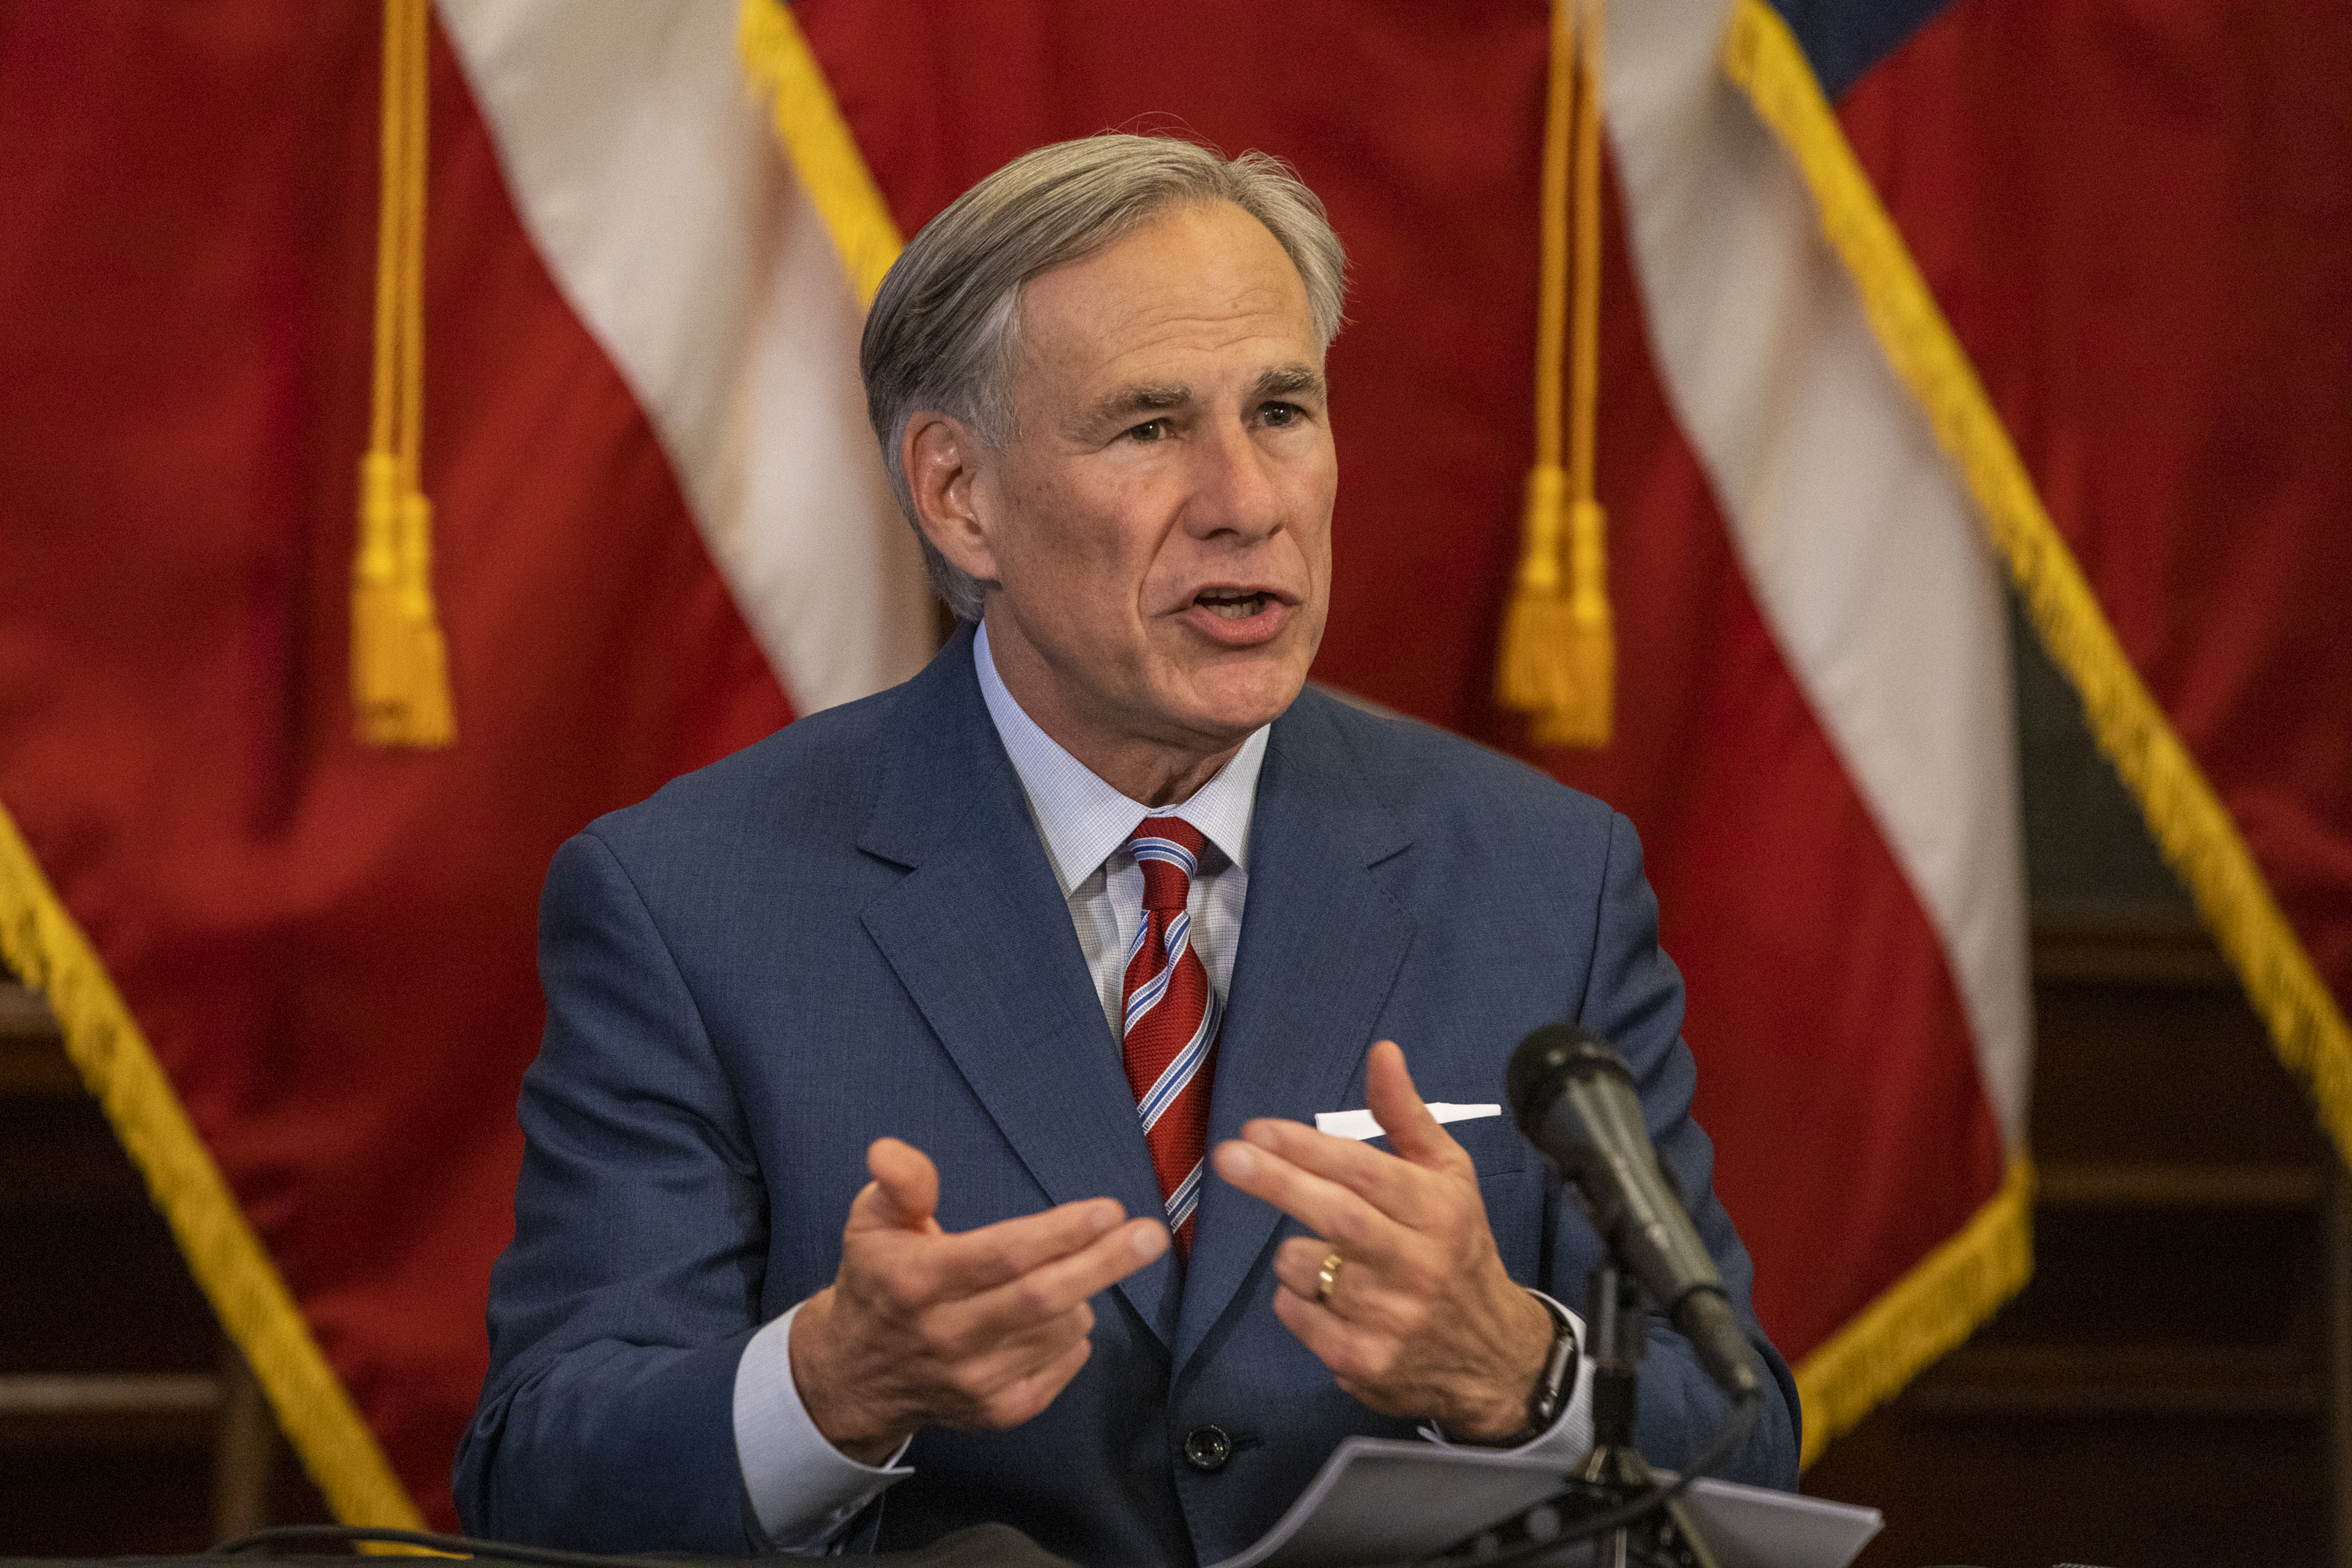 Texas Just Took A GIANT Step Towards Protecting The Second Amendment!